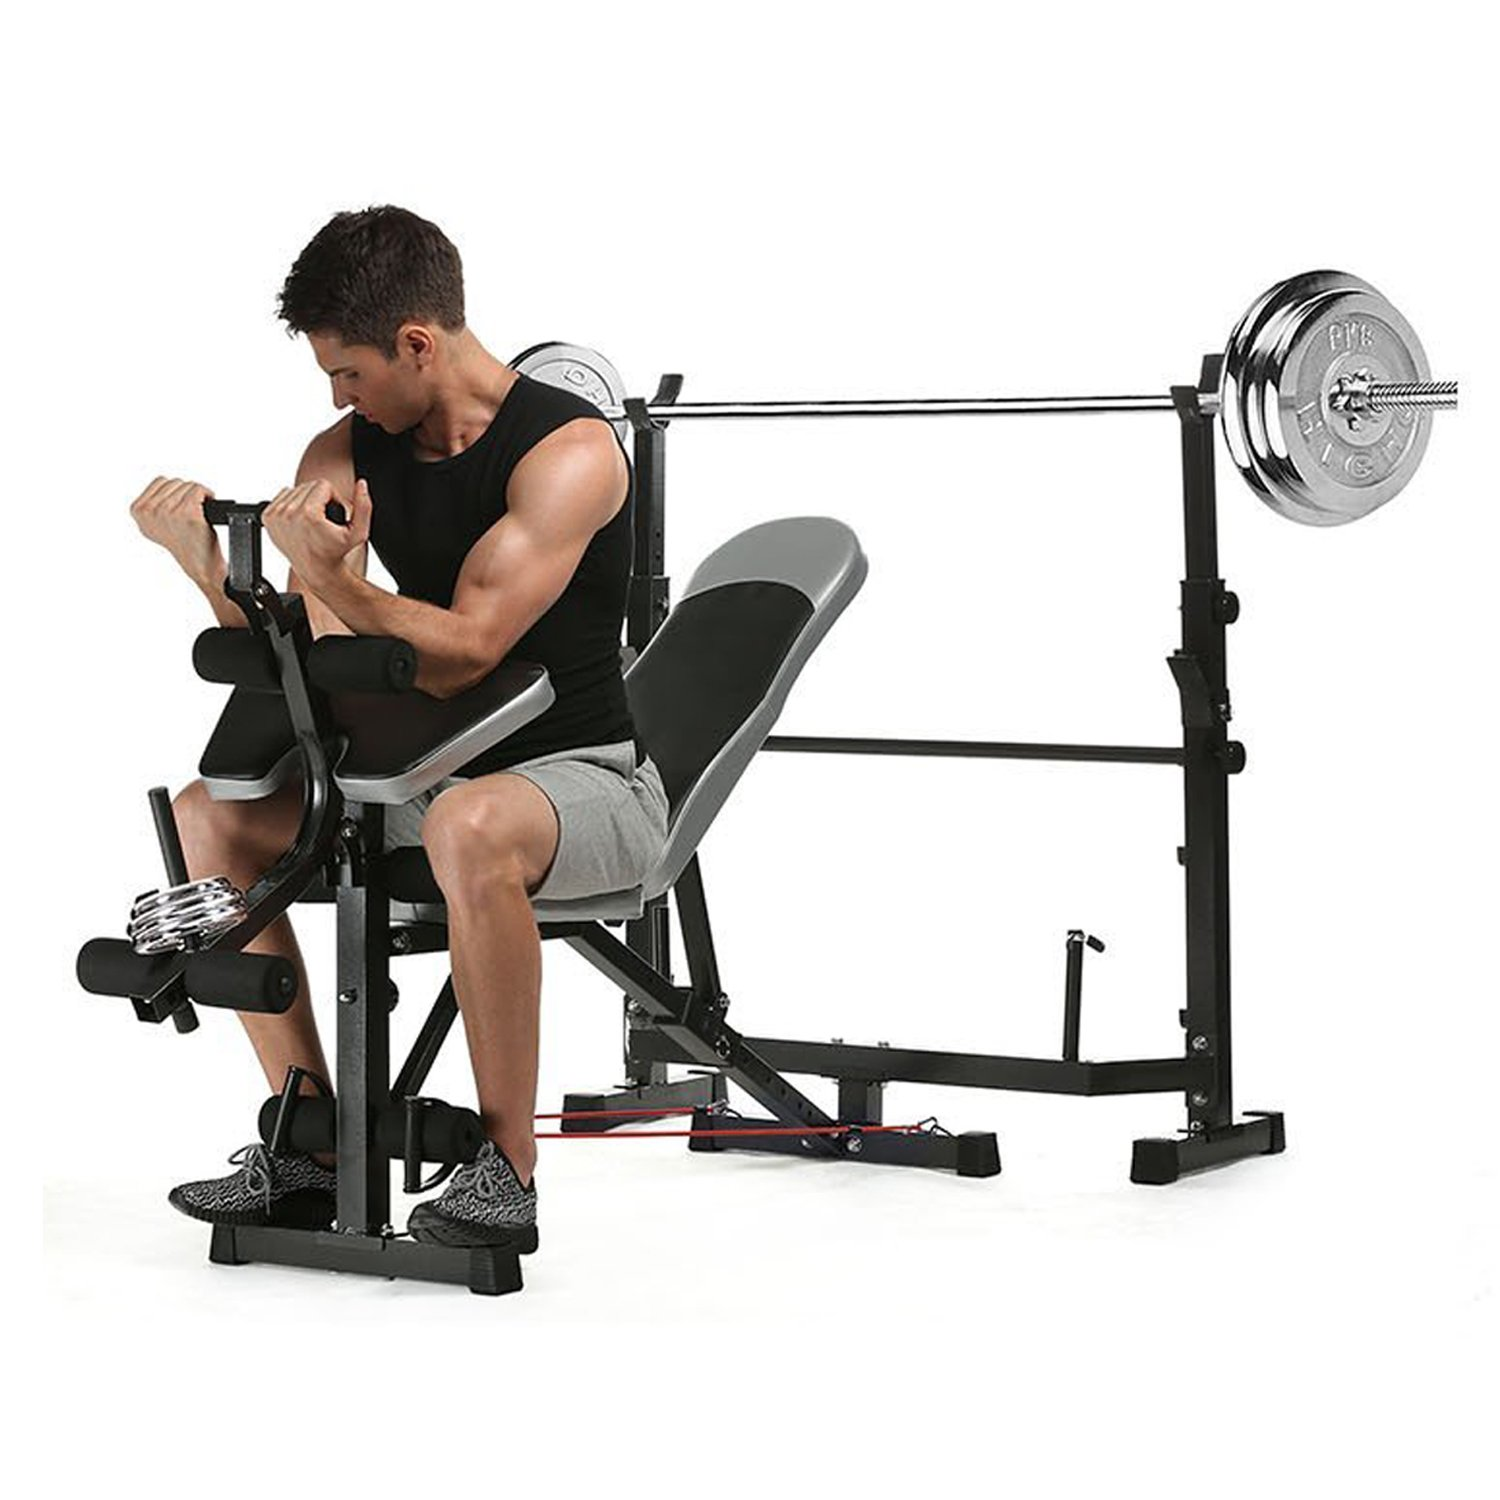 Anfan Olympic Weight Bench, Multi-Function Adjustable Weight Bench with Preacher Curl, Leg Developer for Indoor Exercise (US Stock)